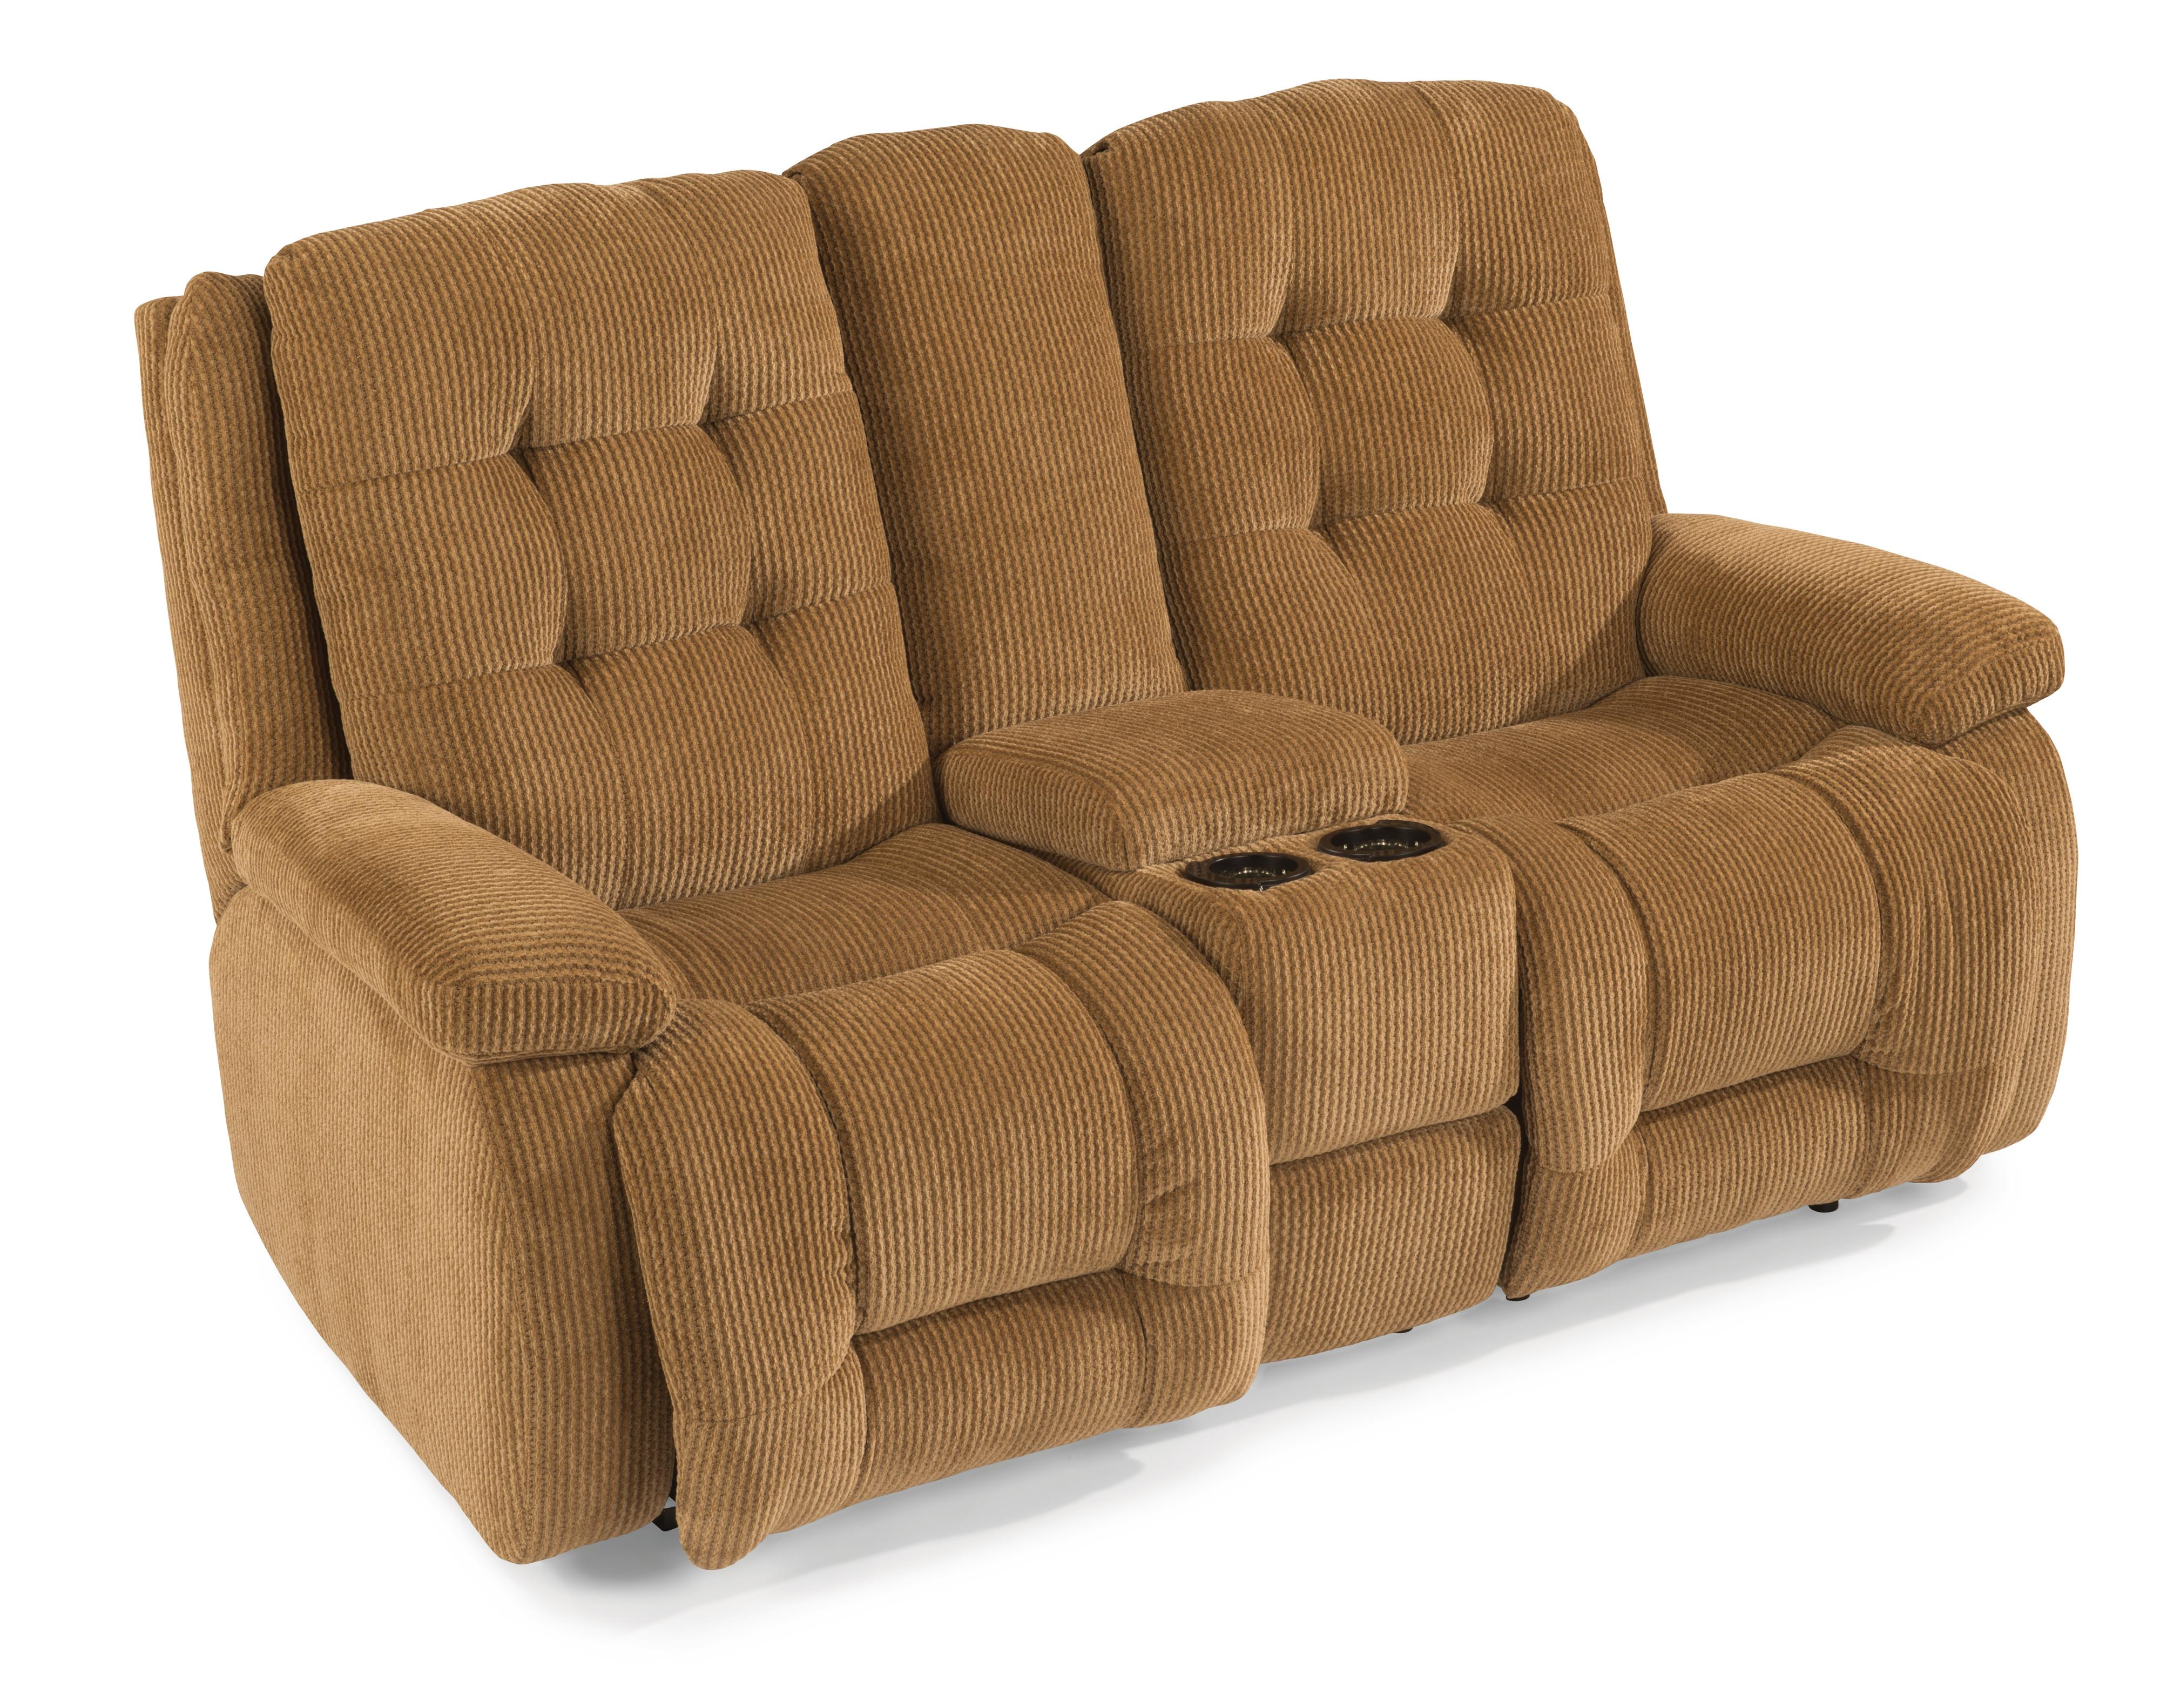 Flexsteel Paxton Power Reclining Loveseat w/ Console - Item Number: 4882-601M-811-90